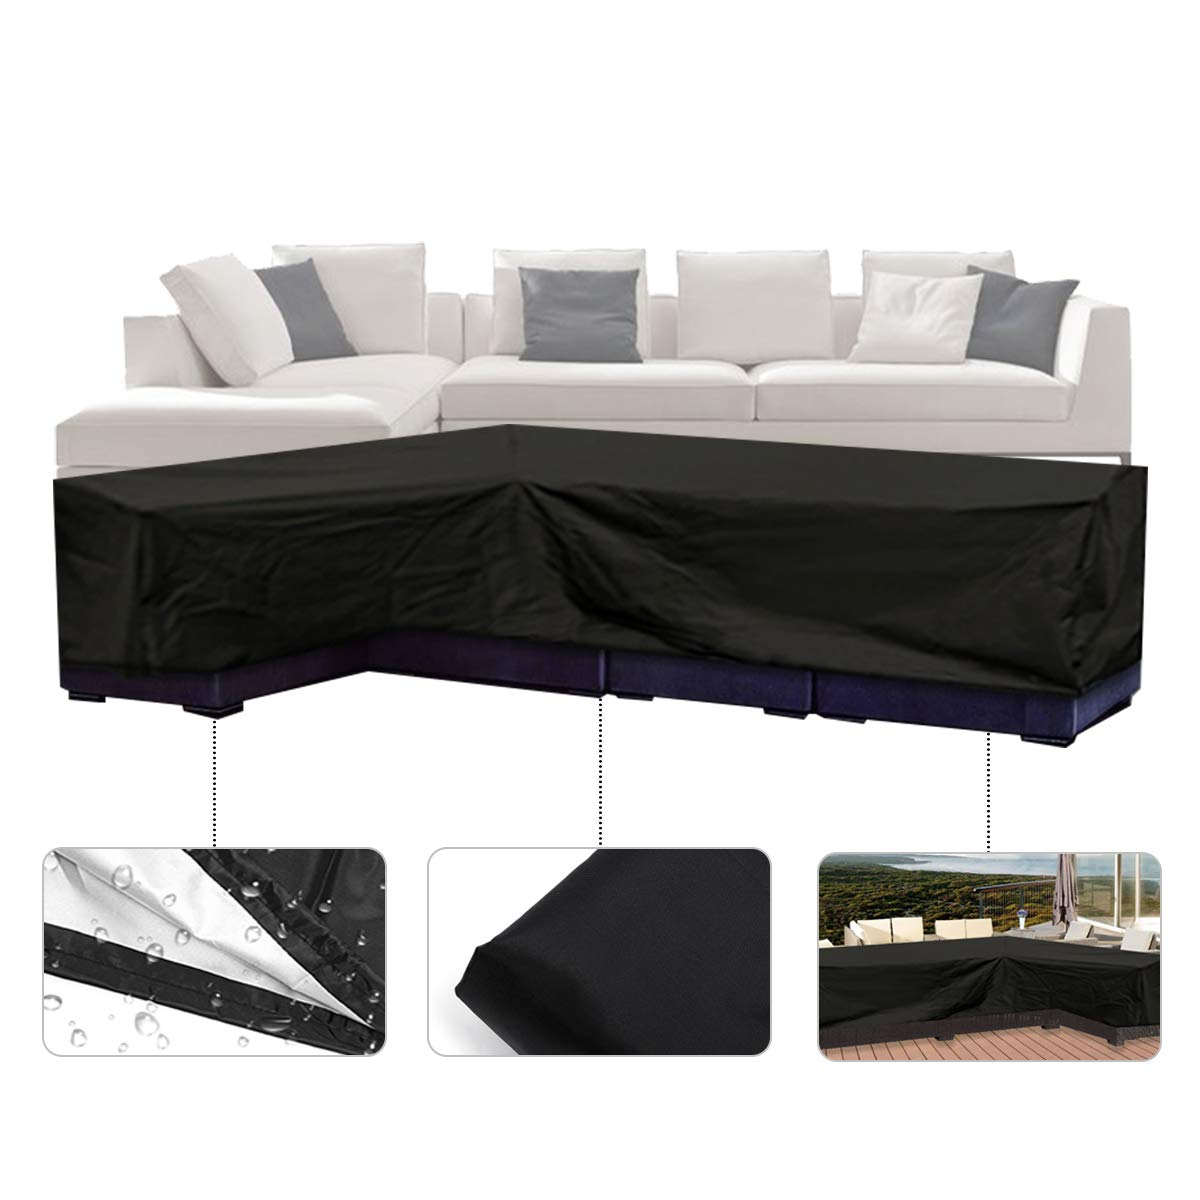 ESSORT Patio Cover, Large Outdoor Sectional Furniture Set Cover, Table  Chair Sofa Covers, Waterproof Dust Proof Anti UV/Wind, Protective Cover for  ...